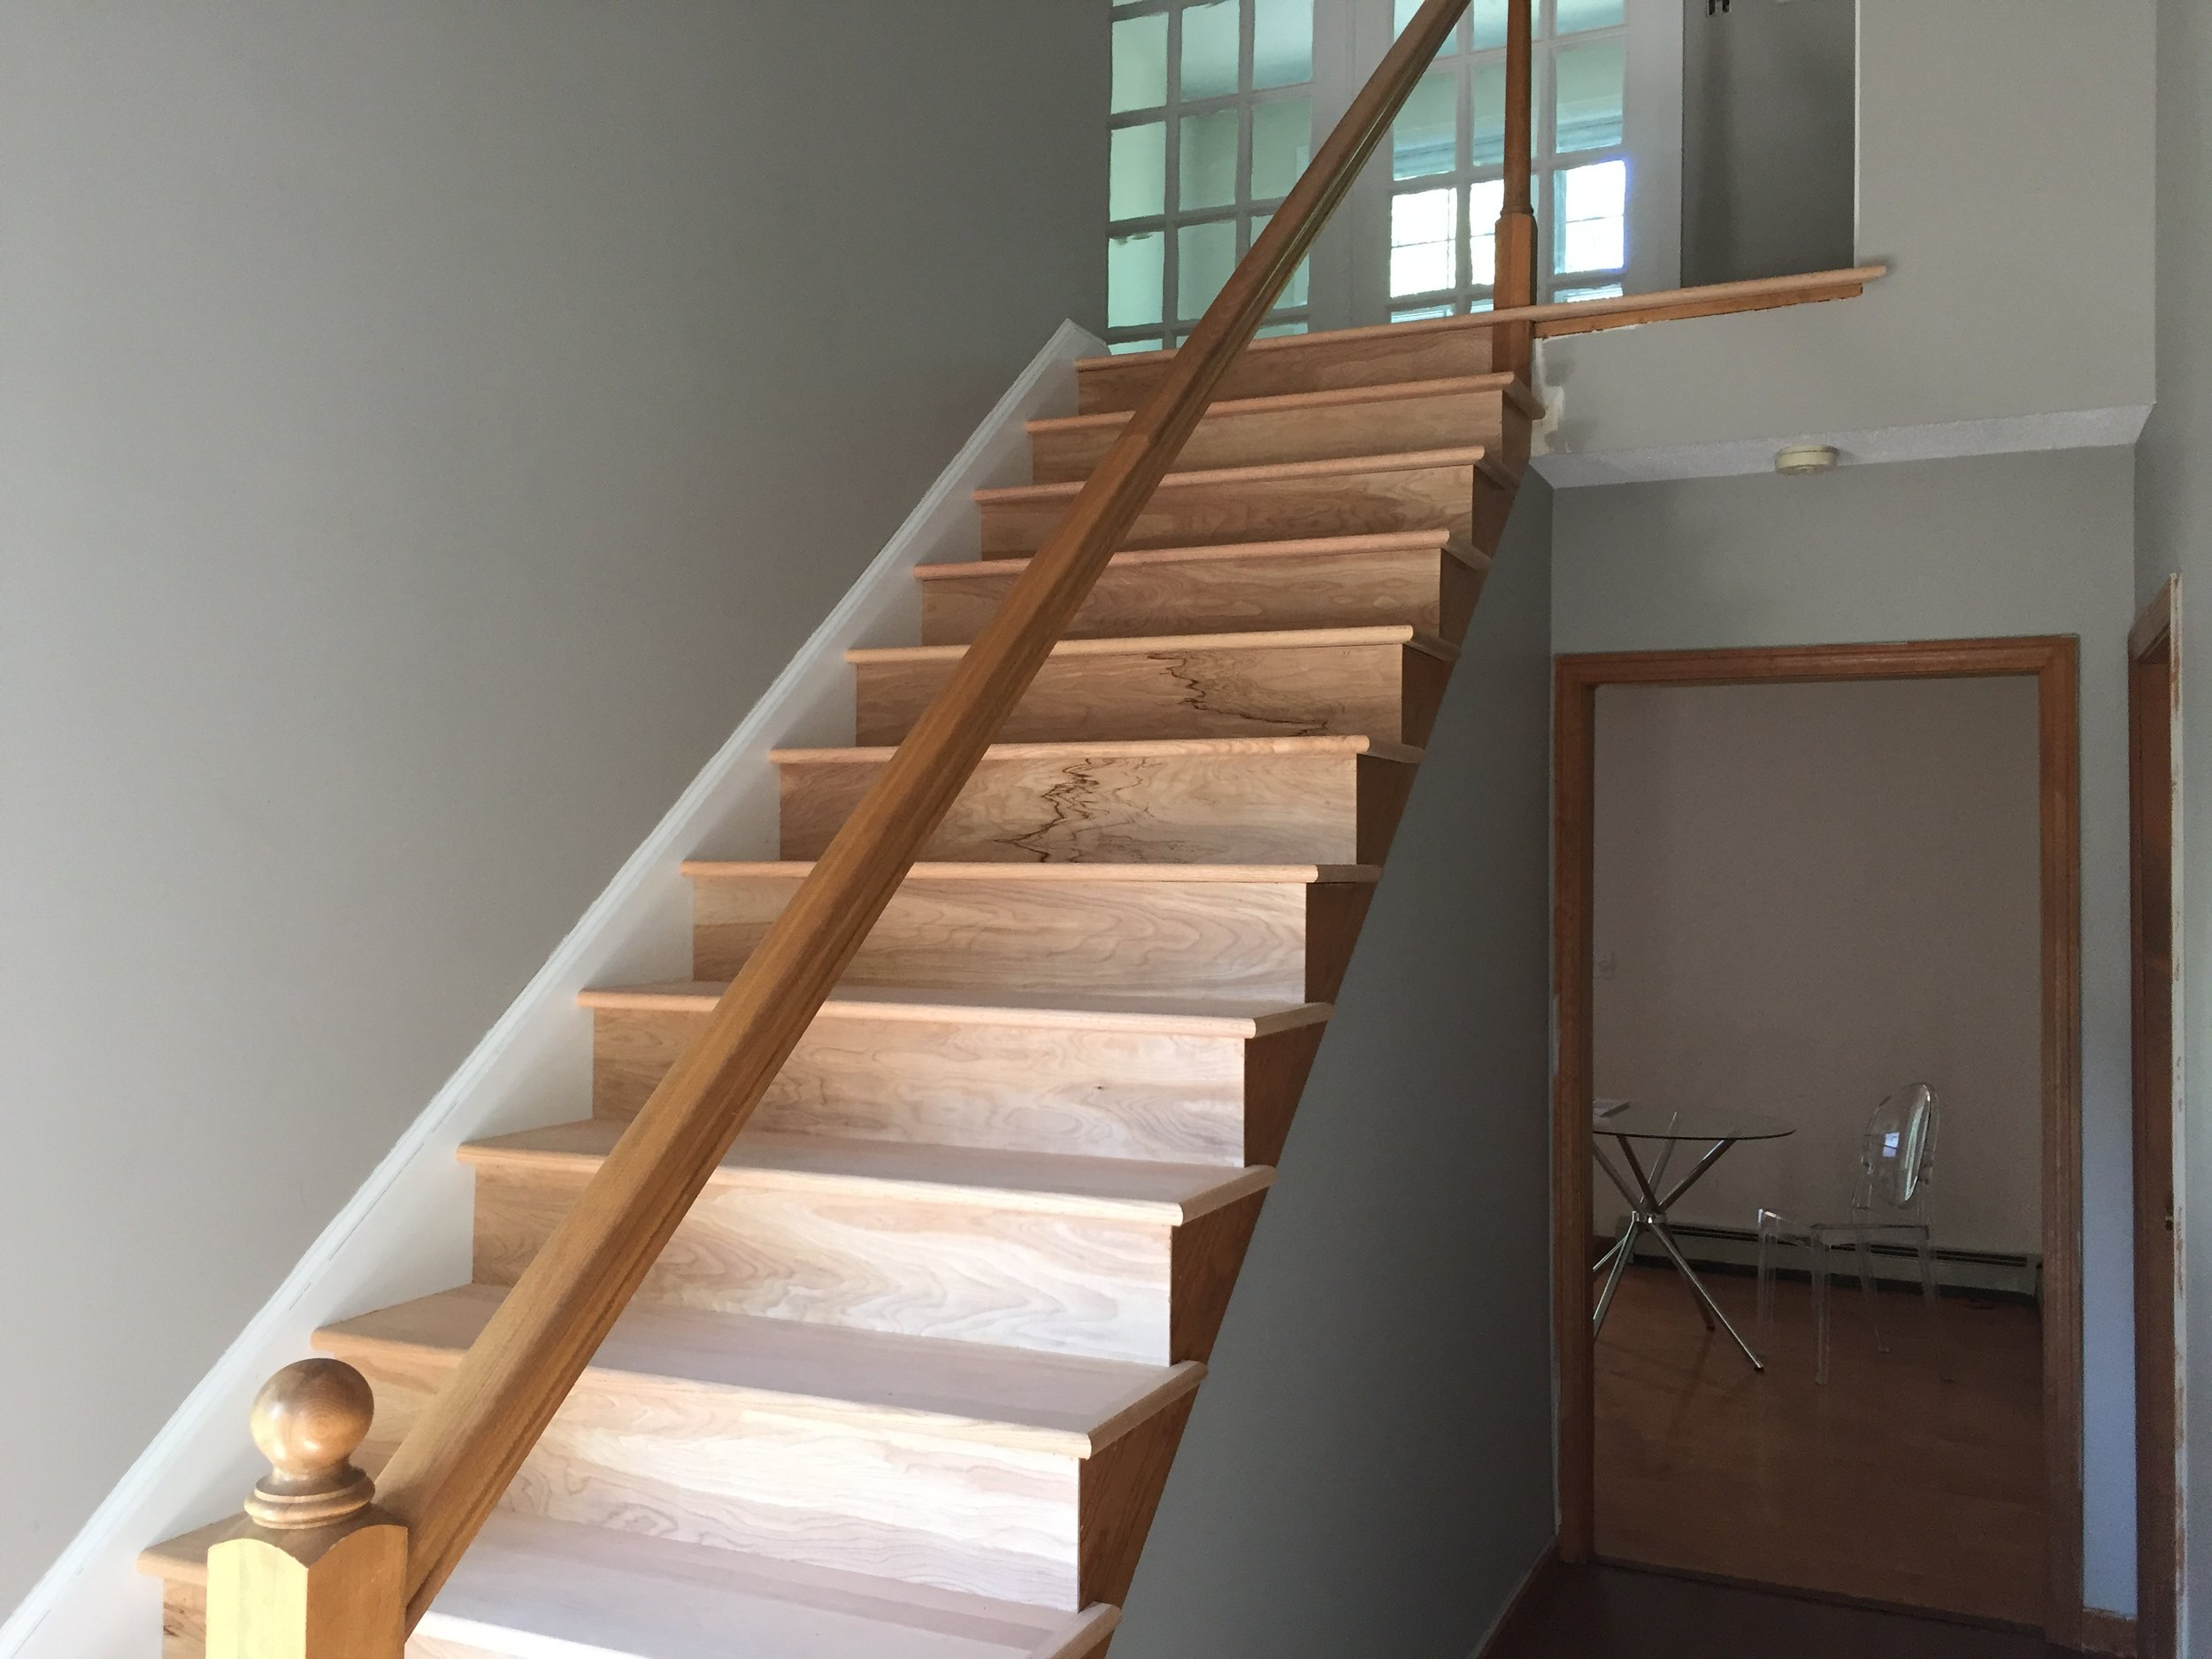 PROGRESS - Entry Stairs new red oak treads and risers installed (unstained)